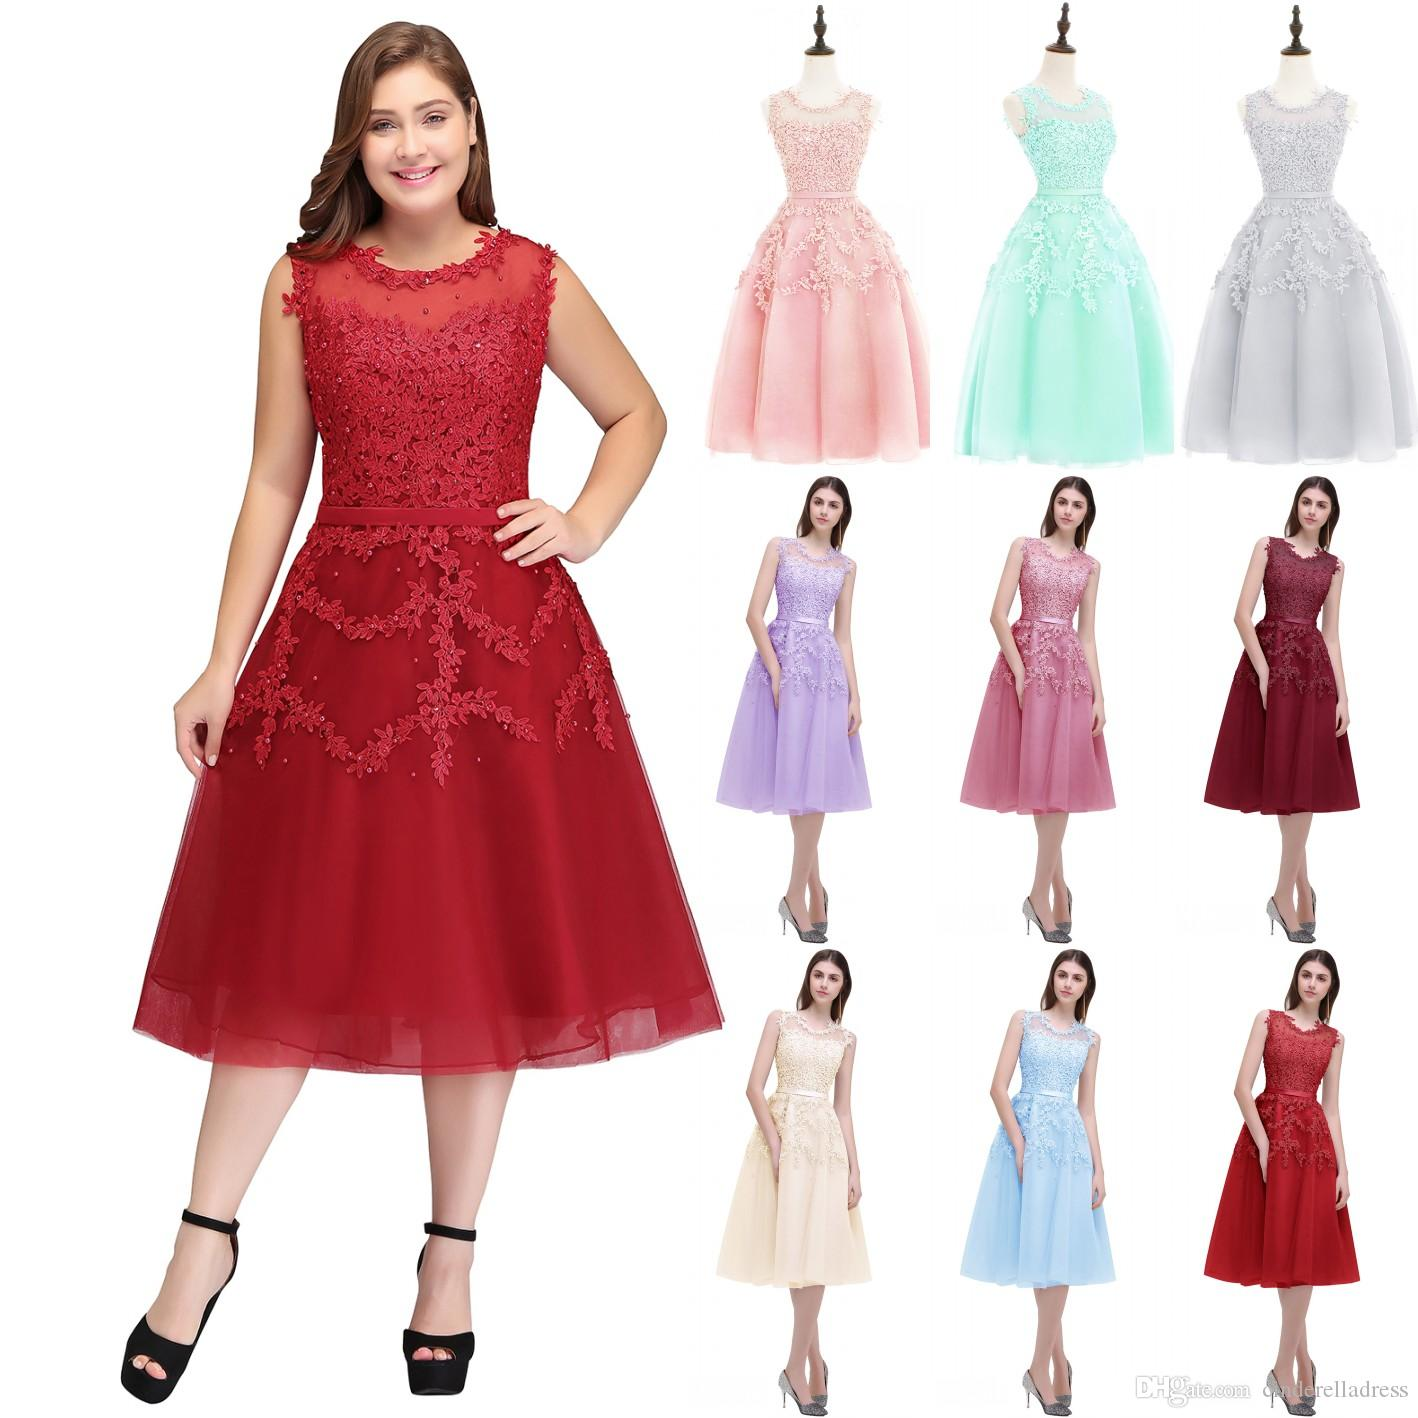 Cheap In Stock Plus Size Red Lace Short Homecoming Cocktail Dresses Tulle Lace Beaded Knee Length A Line Formal Party Dresses CPS298